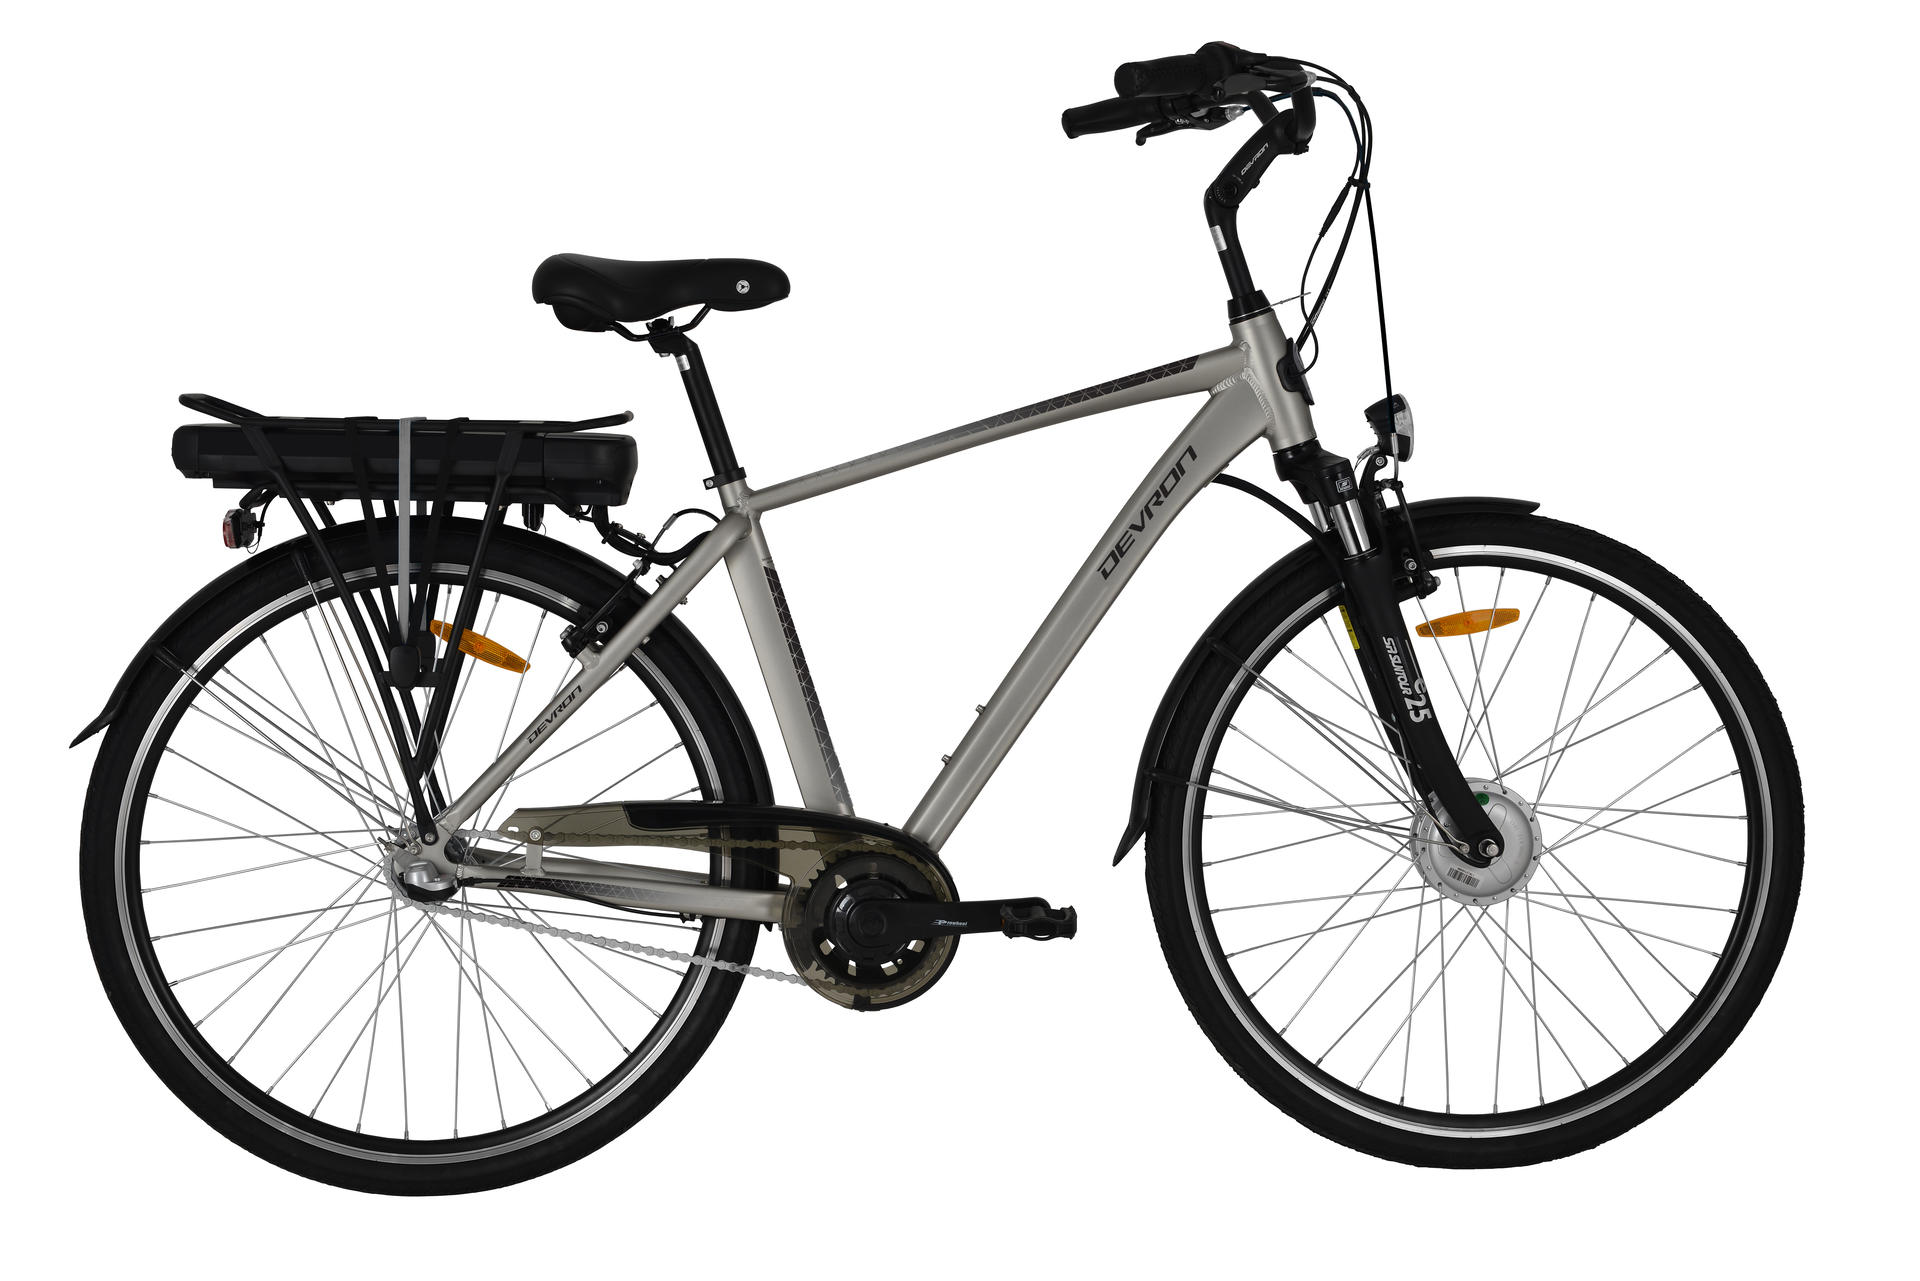 Bicicletta elettrica city bike Devron 28121 490mm Champagne